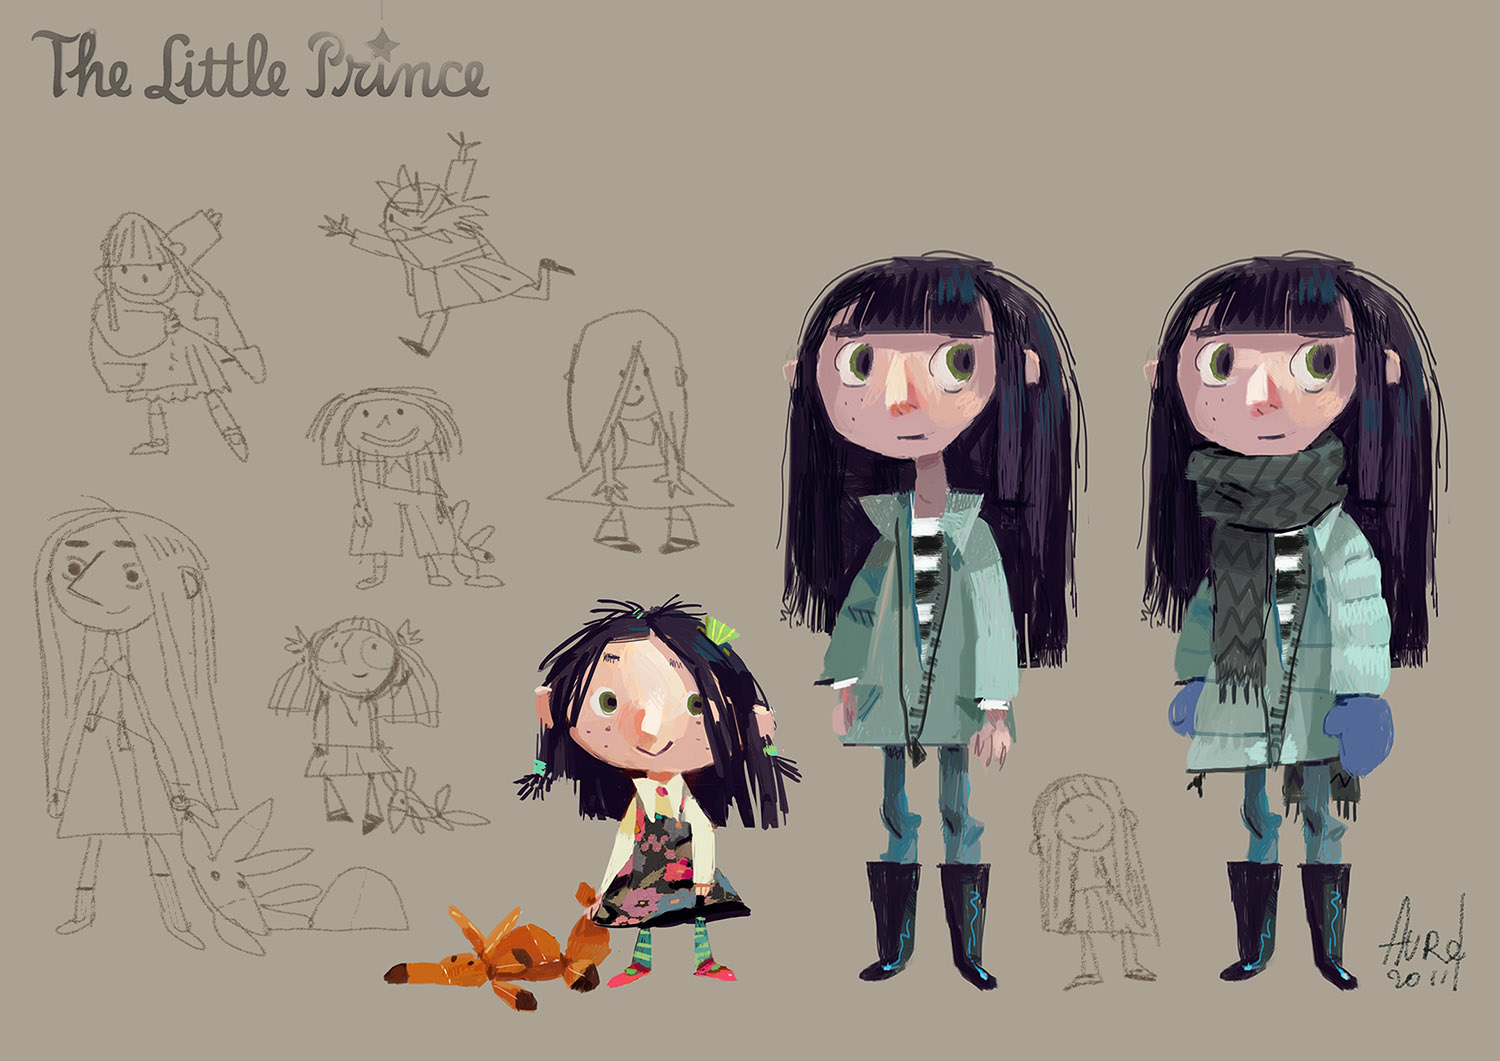 predal_the-little-prince_predal_05_little-girl_2.jpg